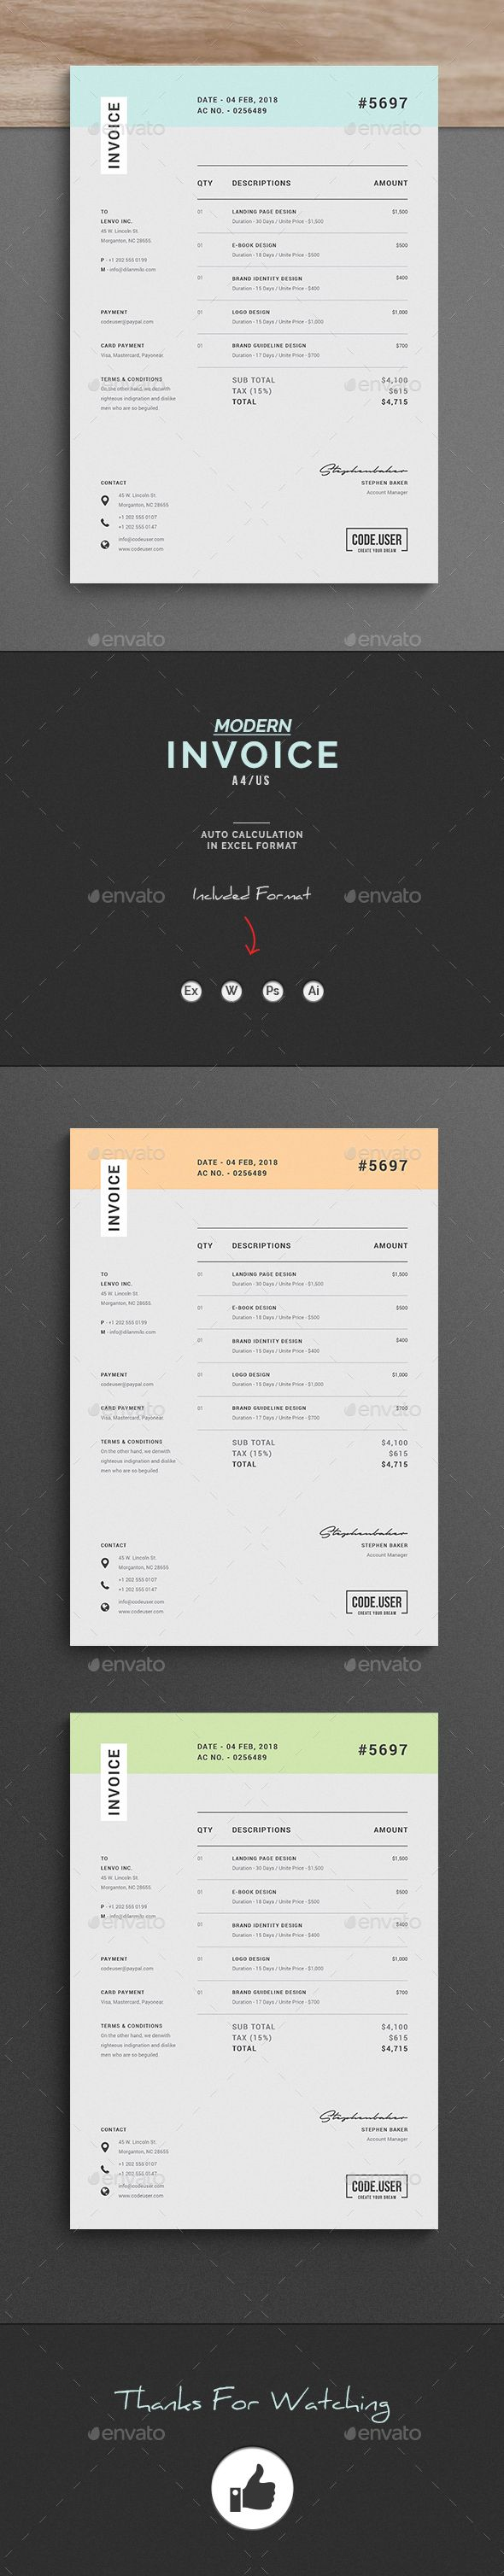 Invoice   Template  Modern graphic design and Graphic design inspiration Invoice by upra Invoice Excel Template  Use this Invoice for personal   corporate or company